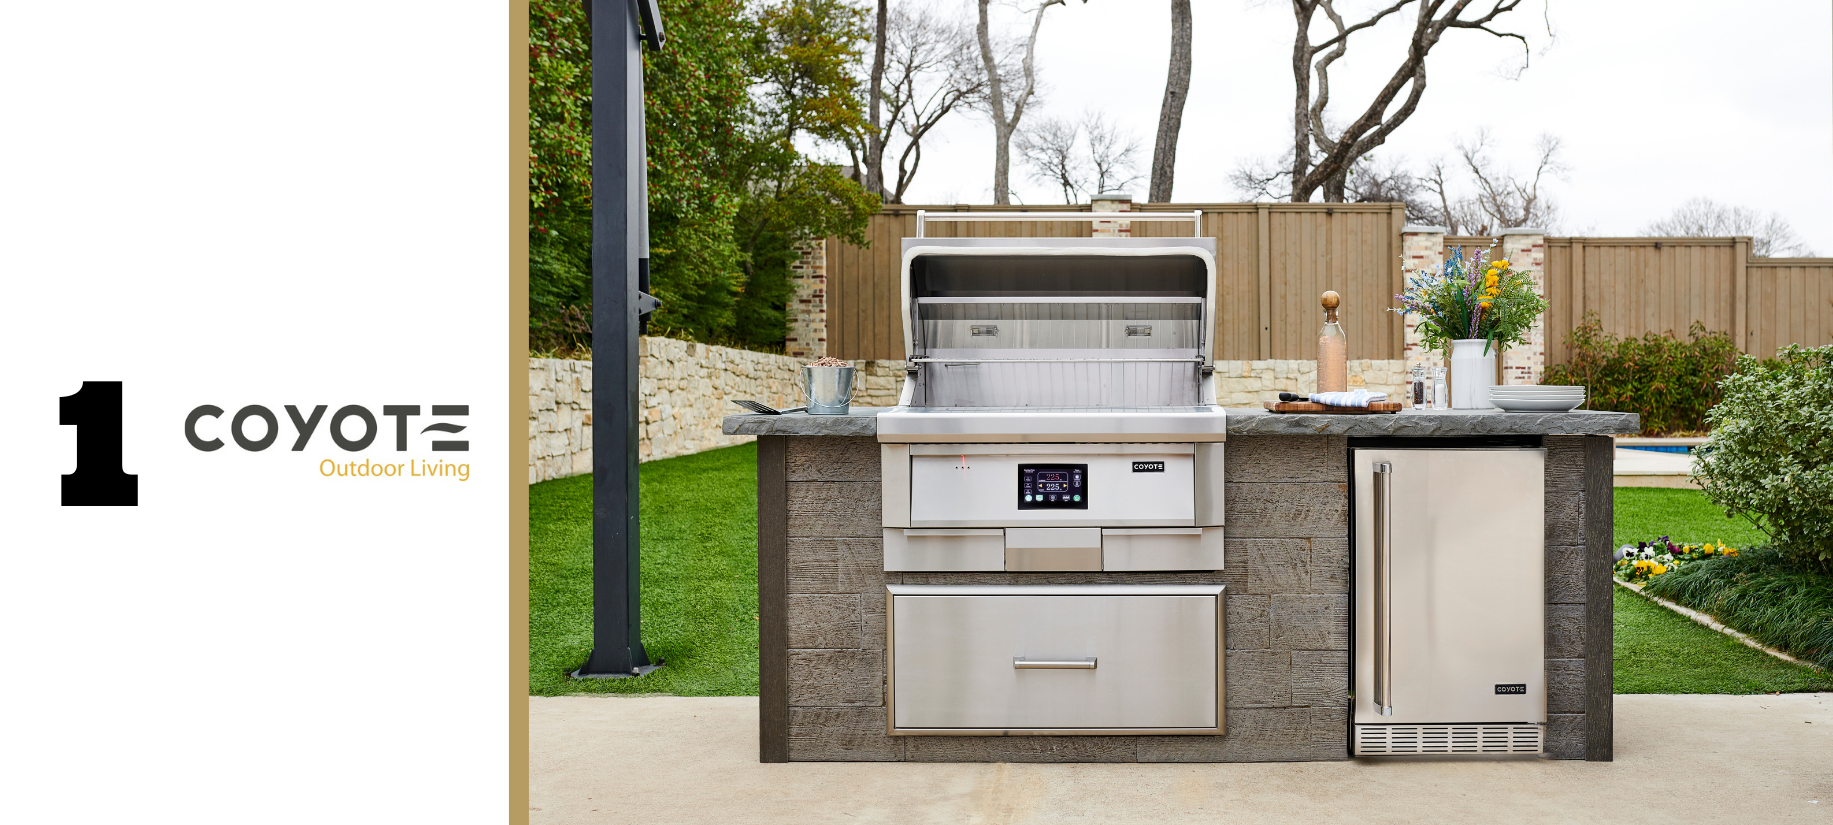 Coyote Pellet Grill and outdoor refrigerator